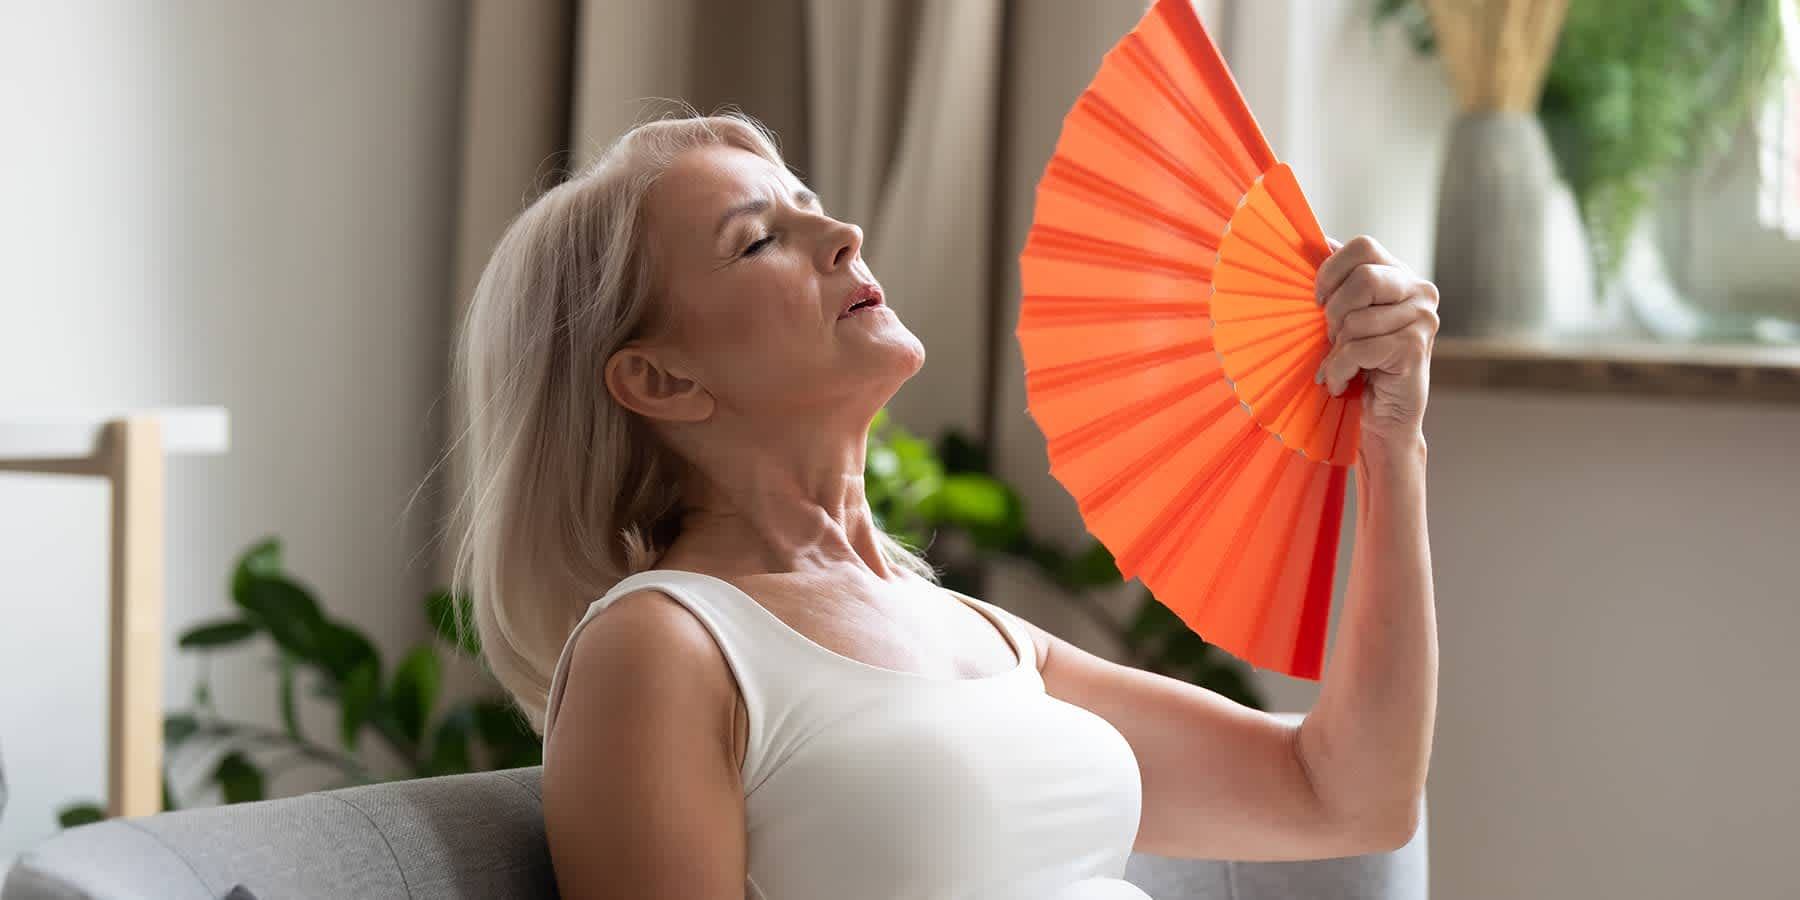 Hot flashes: symptoms, causes, and more - Everlywell: Home Health Testing  Made Easy - Results You Can Understand